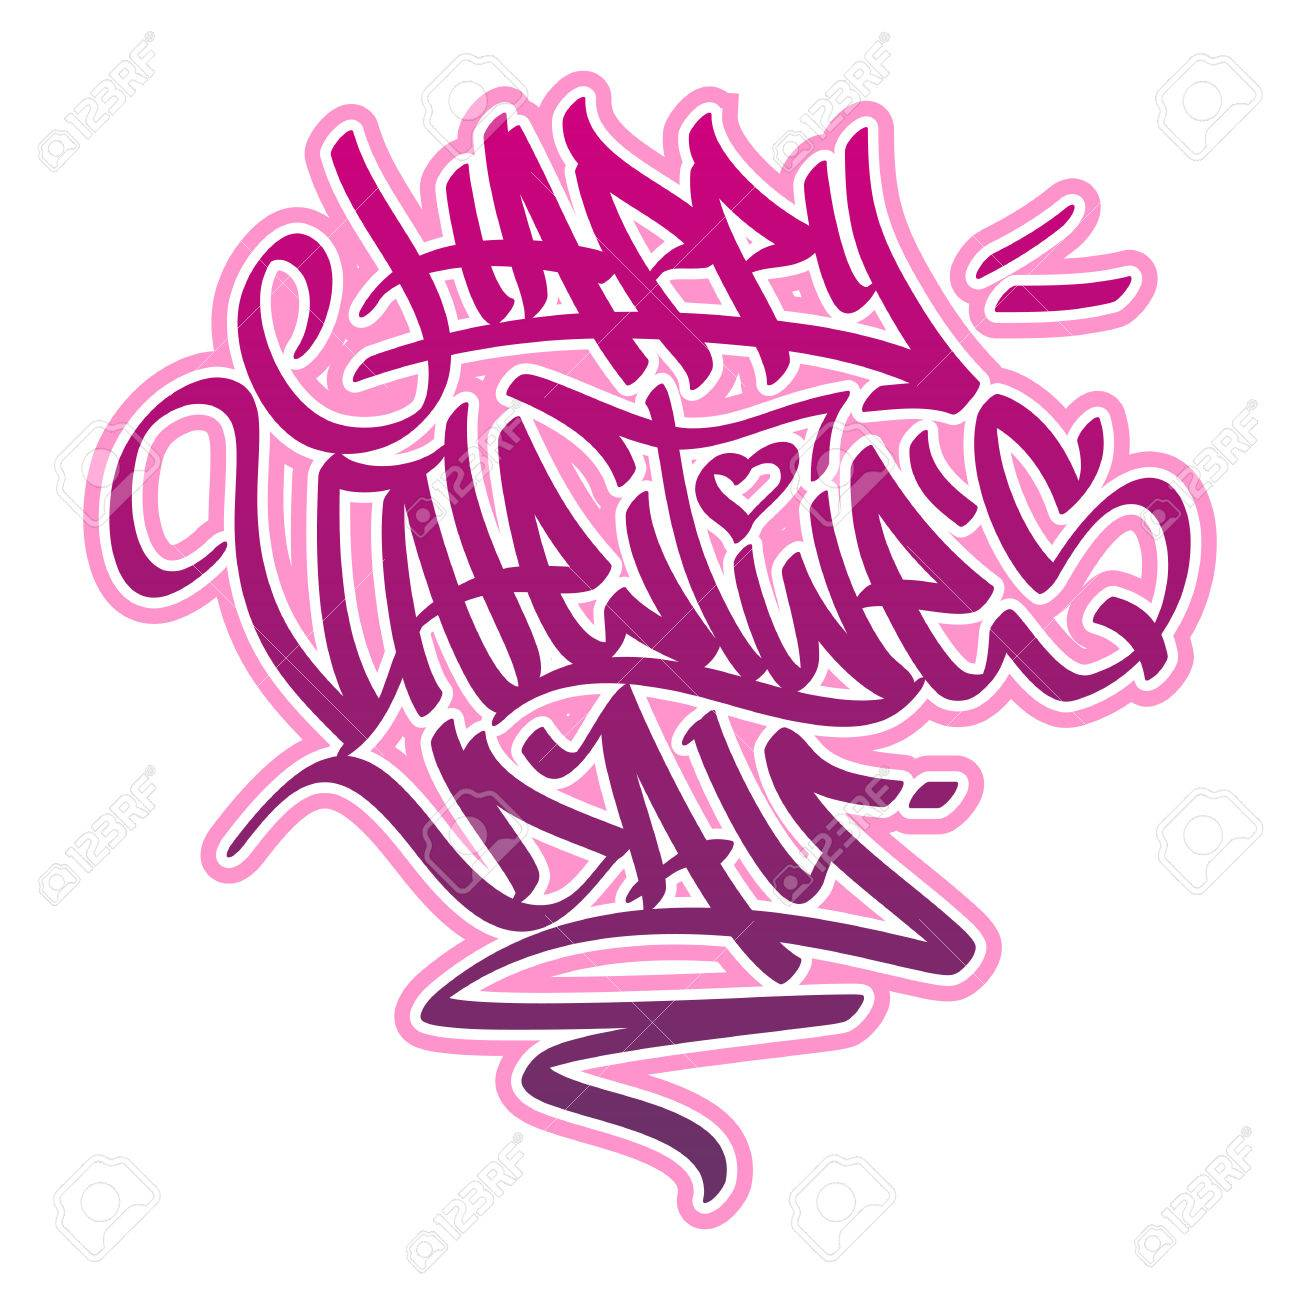 Happy Valentineã¢S Day Card In Graffiti Style In Pink And Red Colors